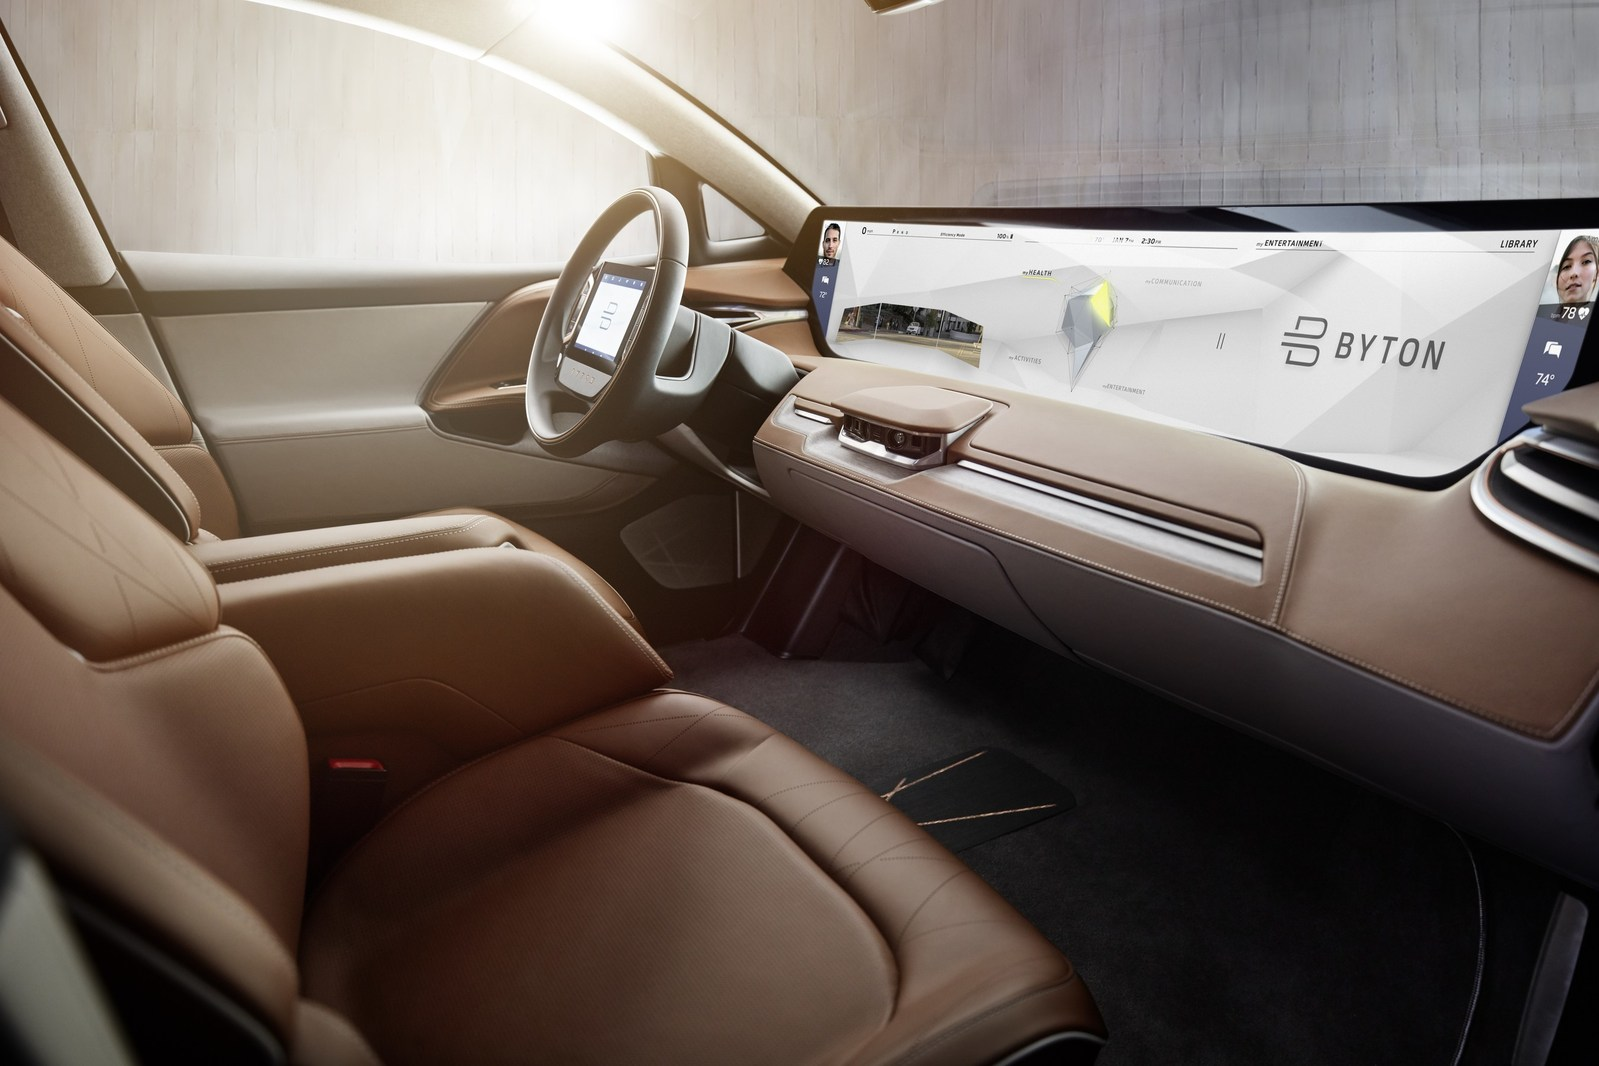 BYTON's Shared Experience Display enables content shown to be shared with other passengers in the car (PRNewsfoto/BYTON)